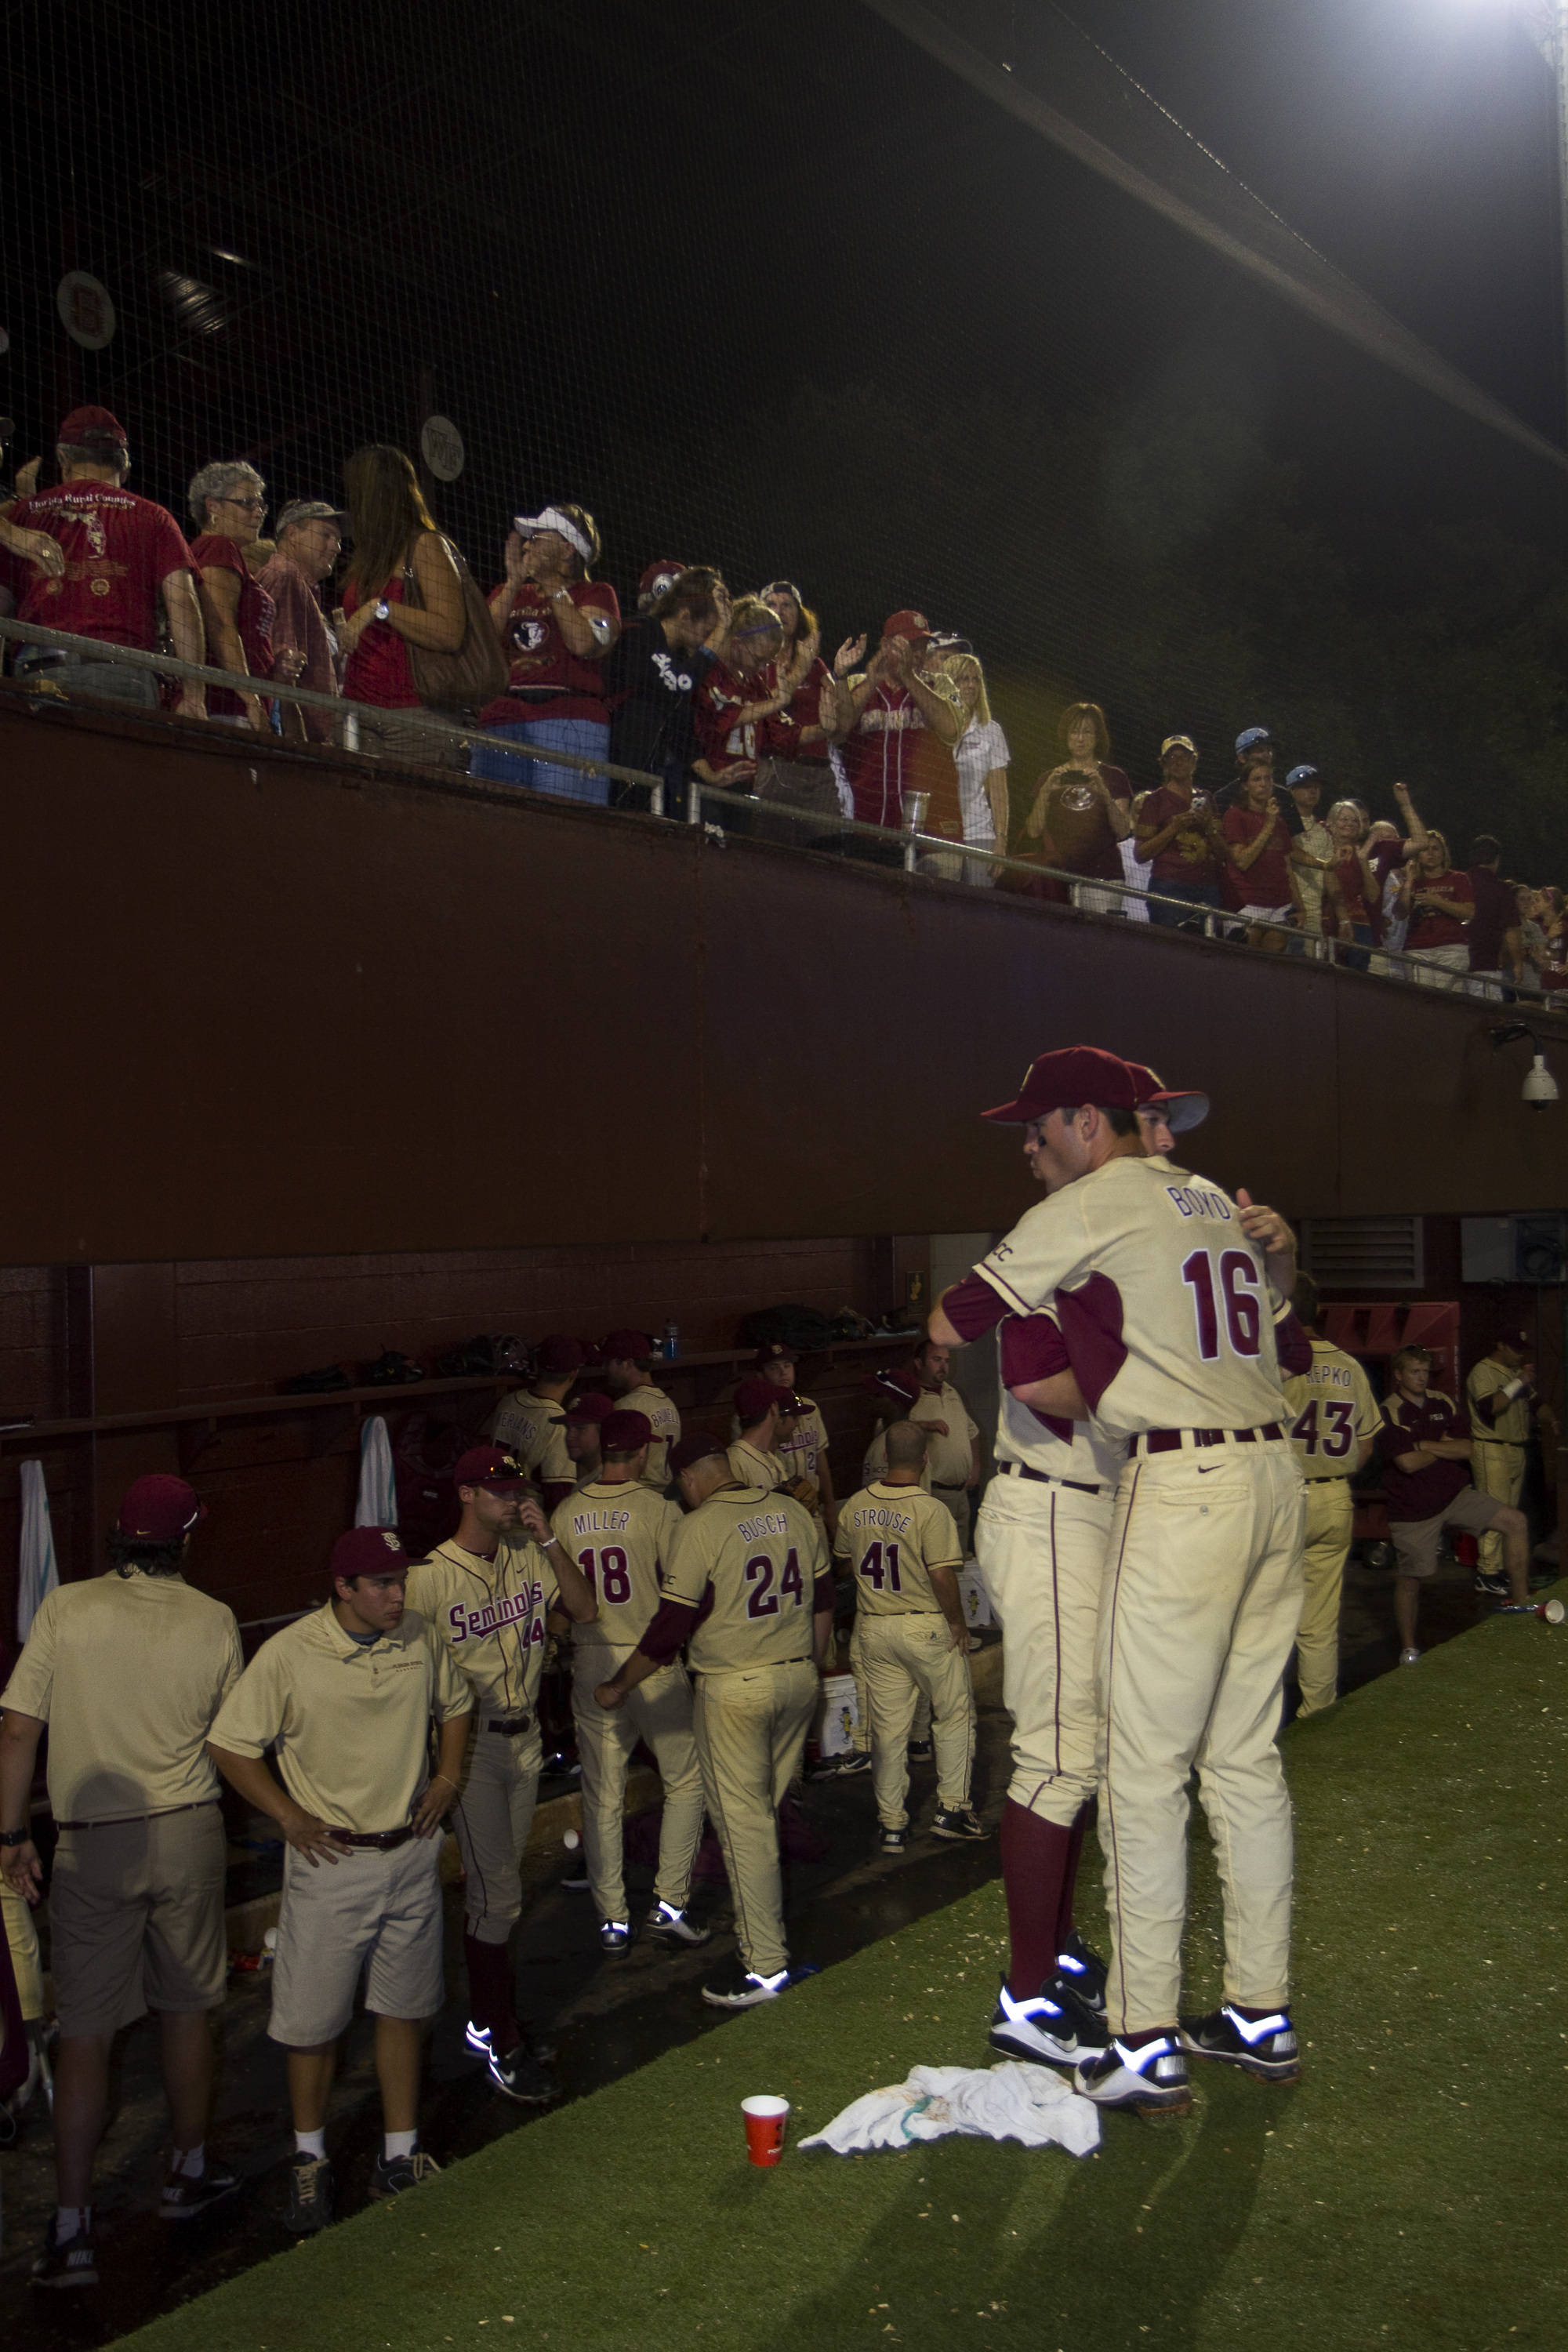 Seminole fans show support while players console each other.